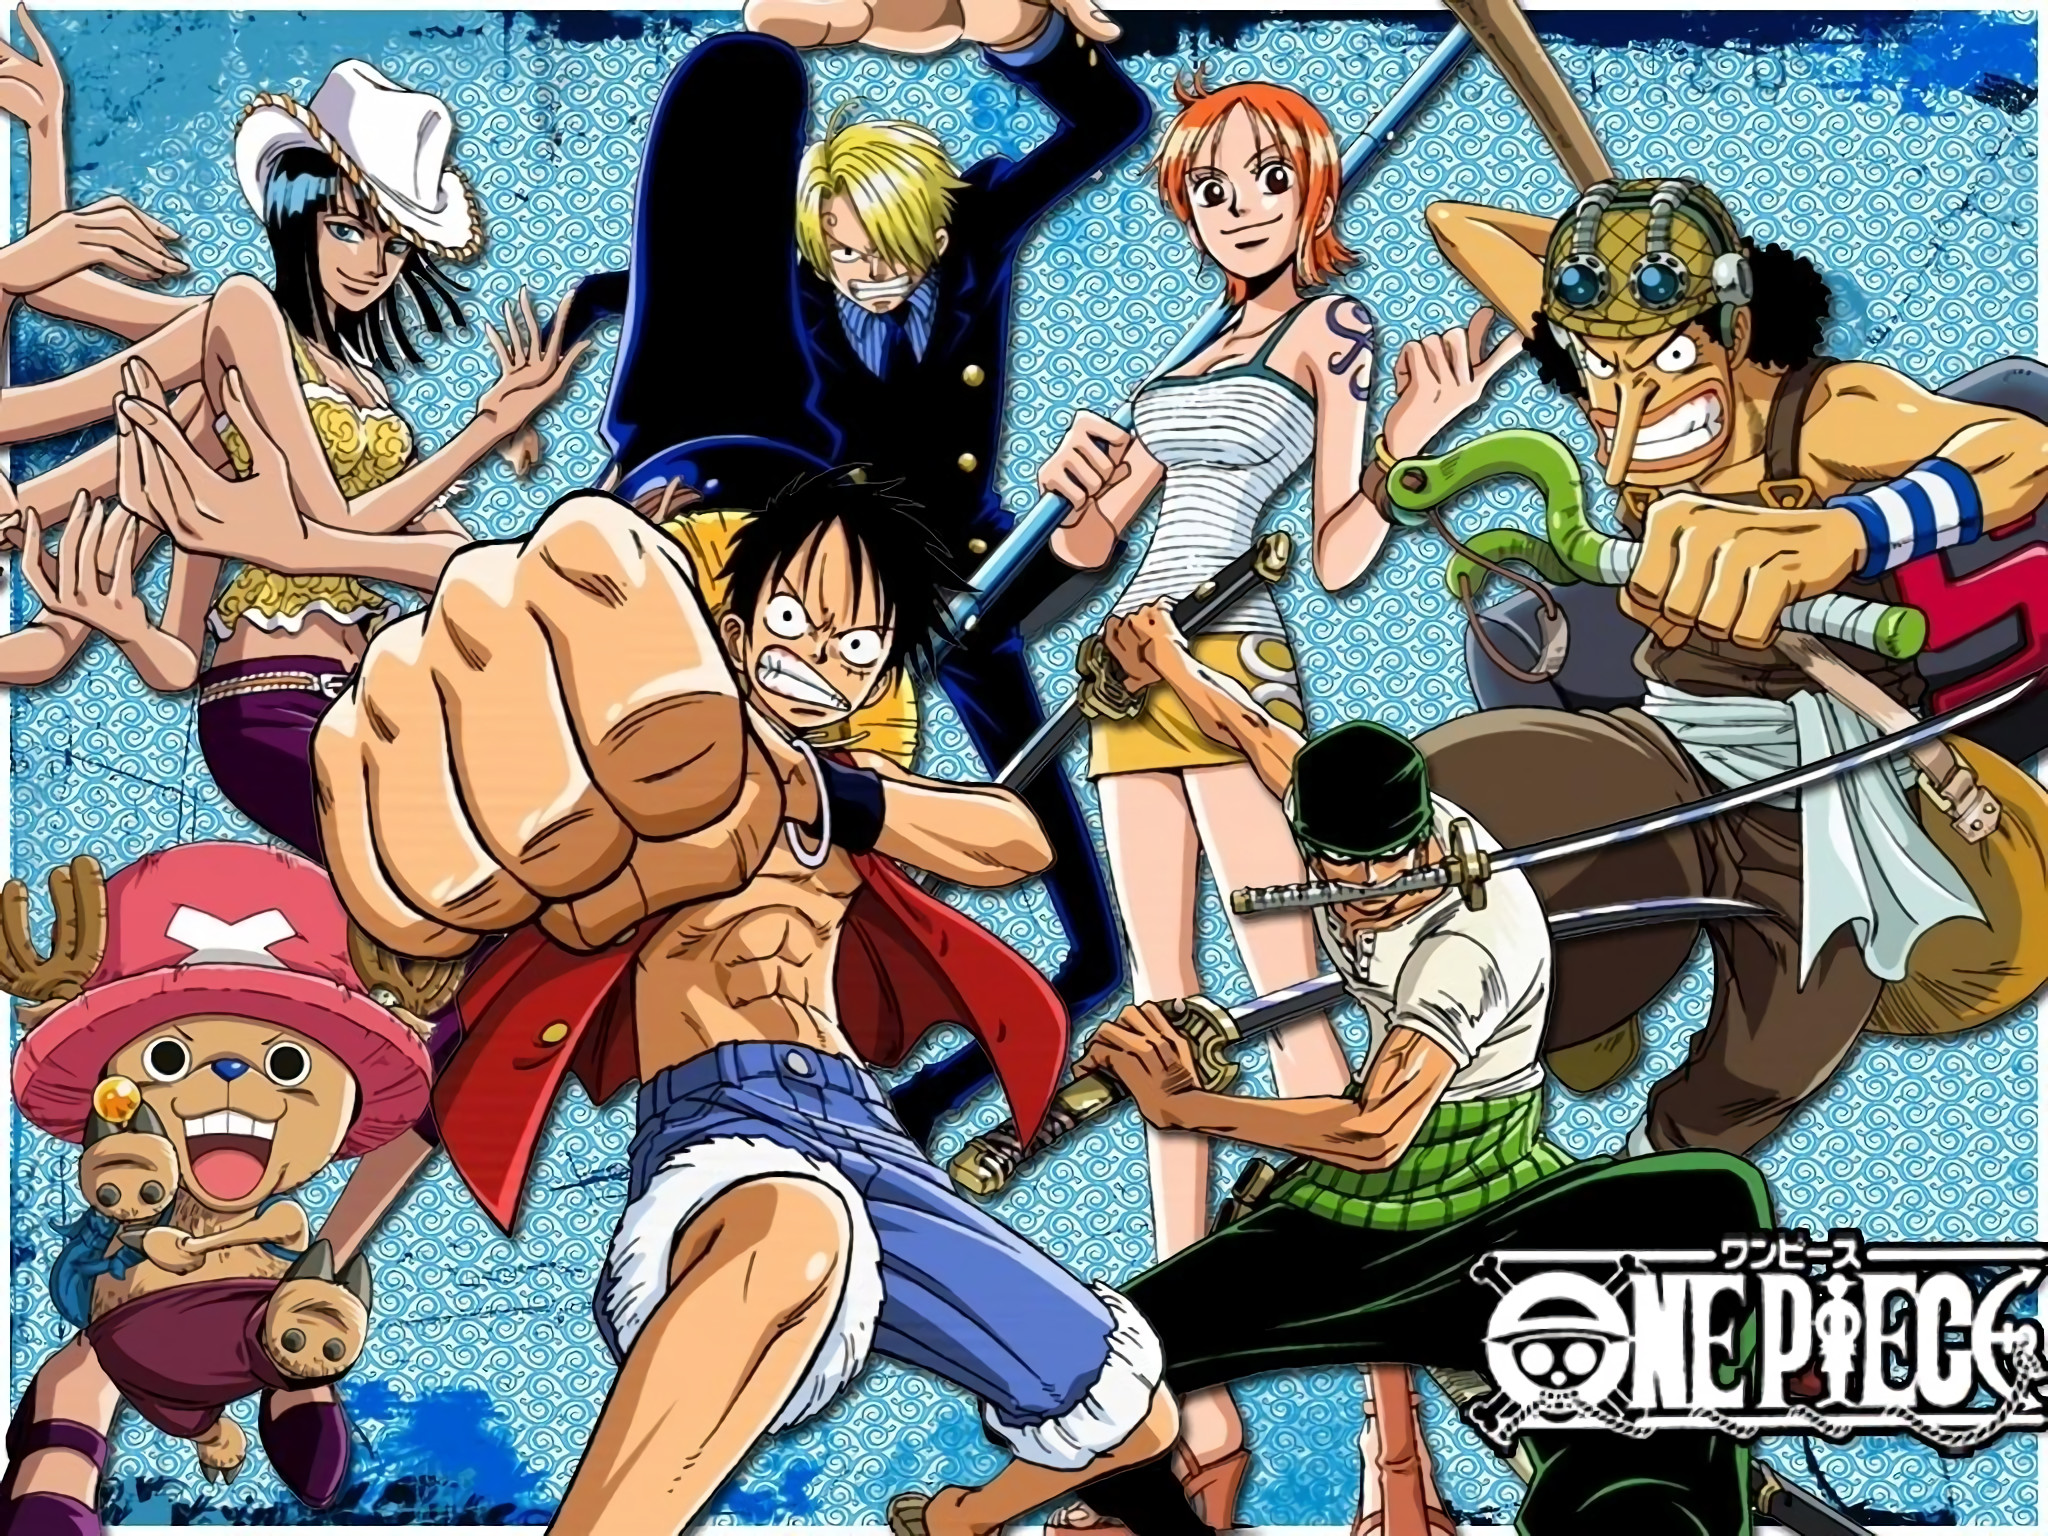 2048x1536 HD Wallpaper | Background ID:47374.  Anime One Piece. 300 Like.  Favorite